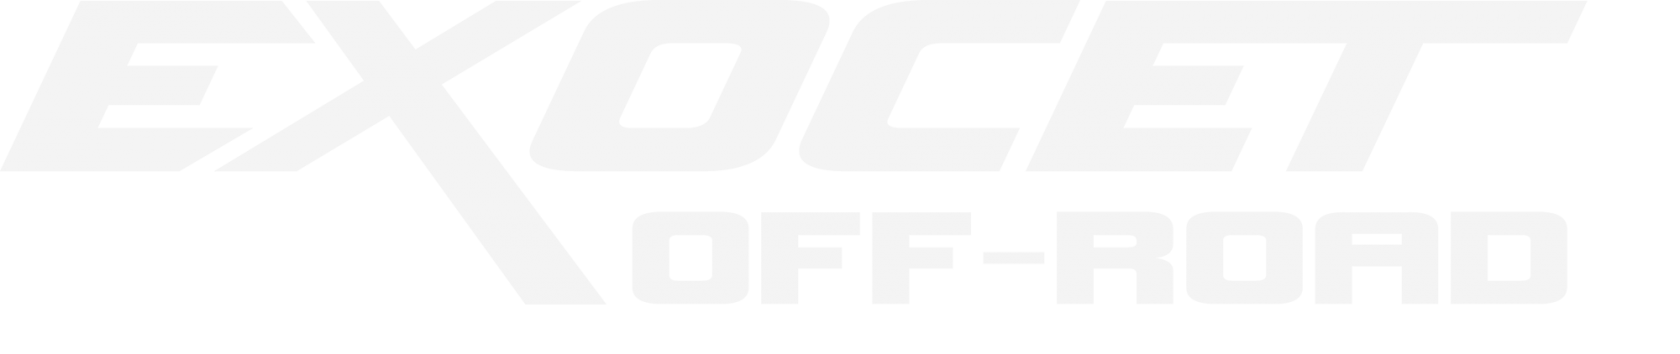 Exomotive-Off-Road-Logo-White